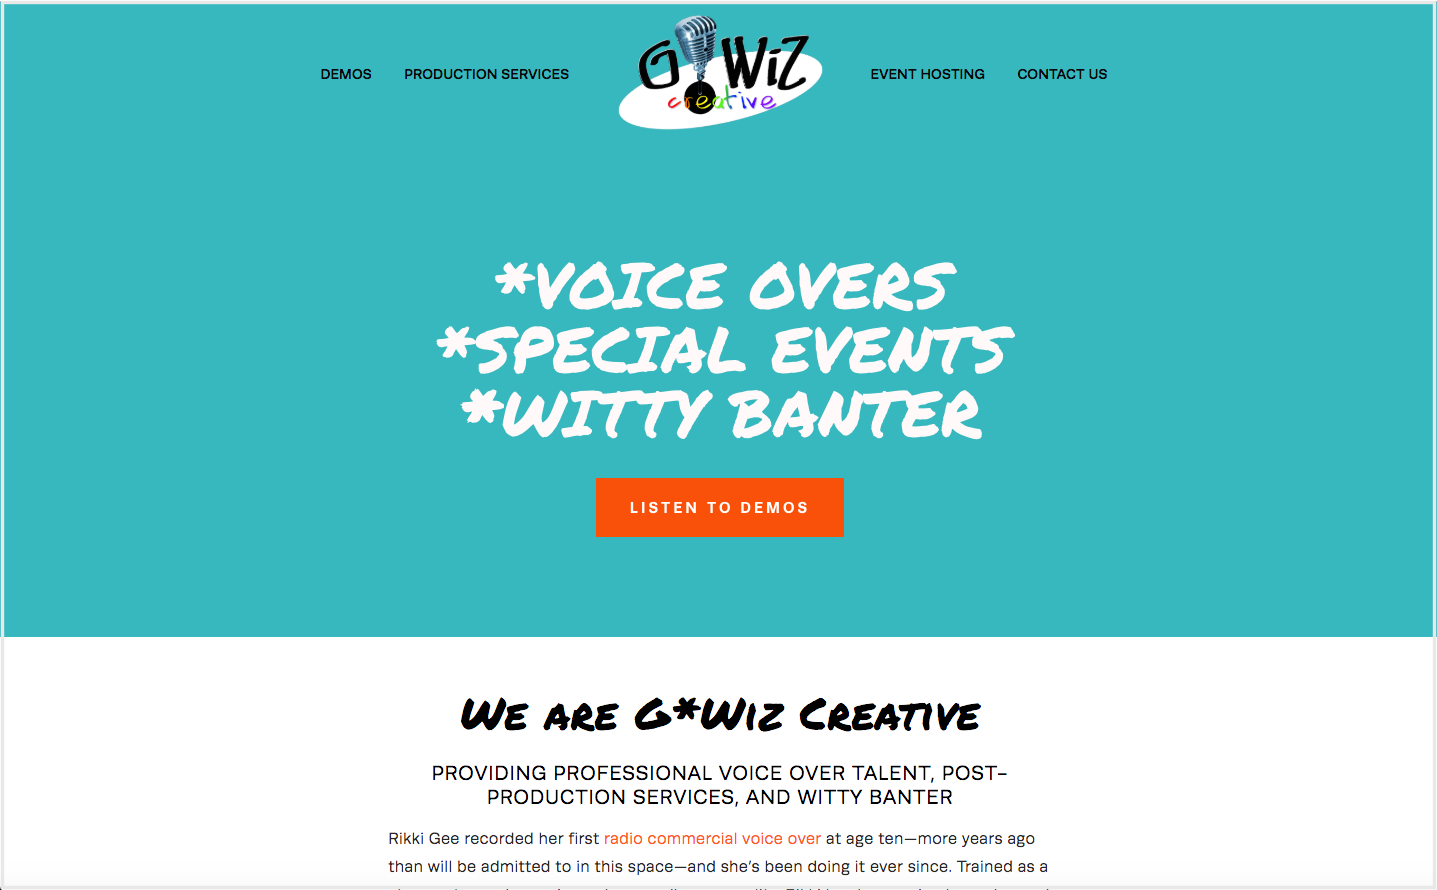 G*Wiz Creative | Voice Overs & Event Hosting - Website designInformation architectureContent creationCopyediting for the webCopy layout for webSearch engine optimization (SEO)Site migration